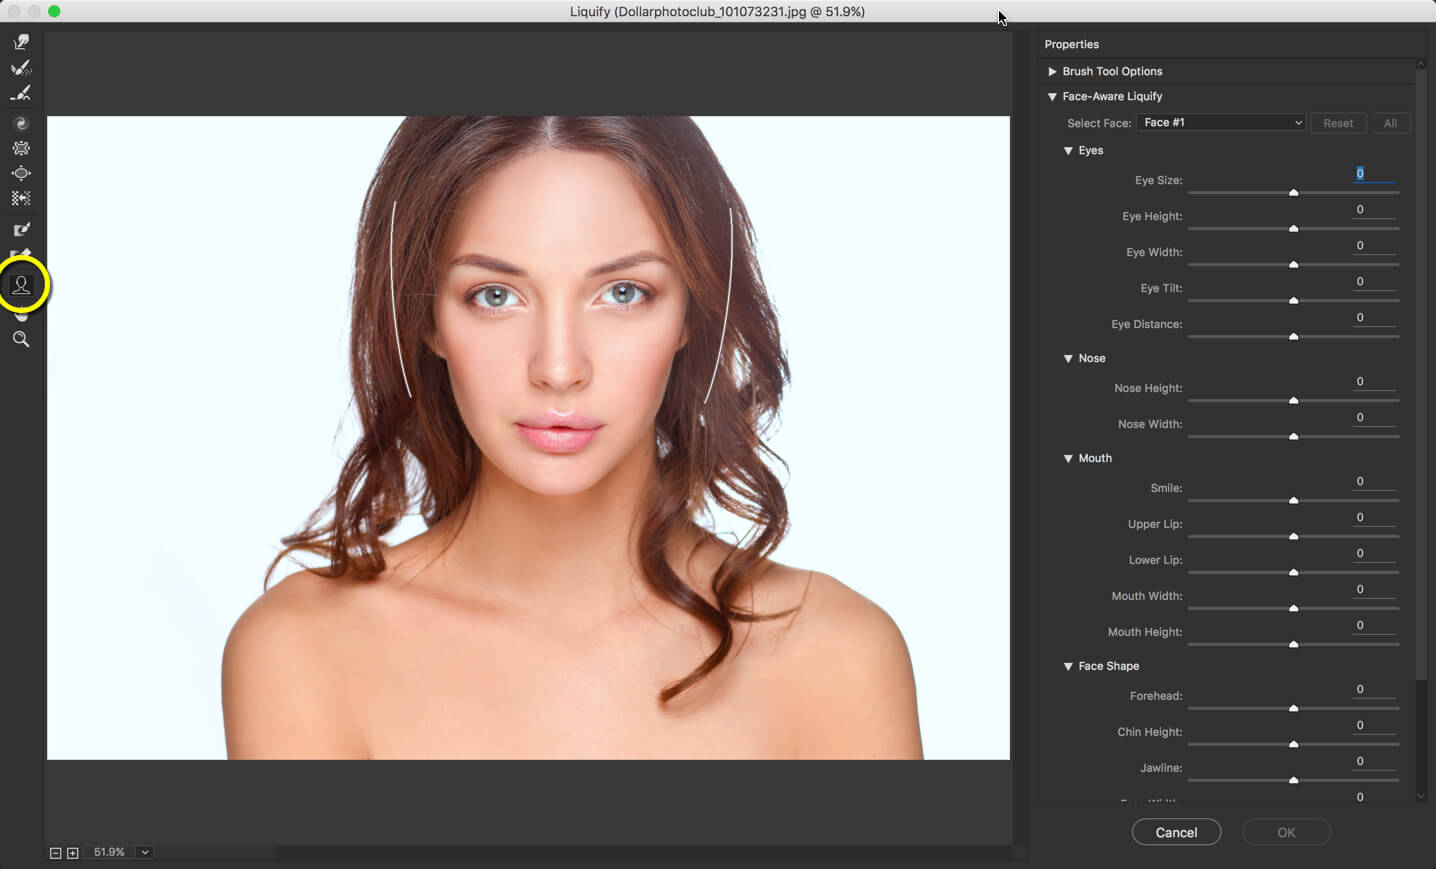 1 - Face Liquify Tool in Photoshop- Change that Face Structure